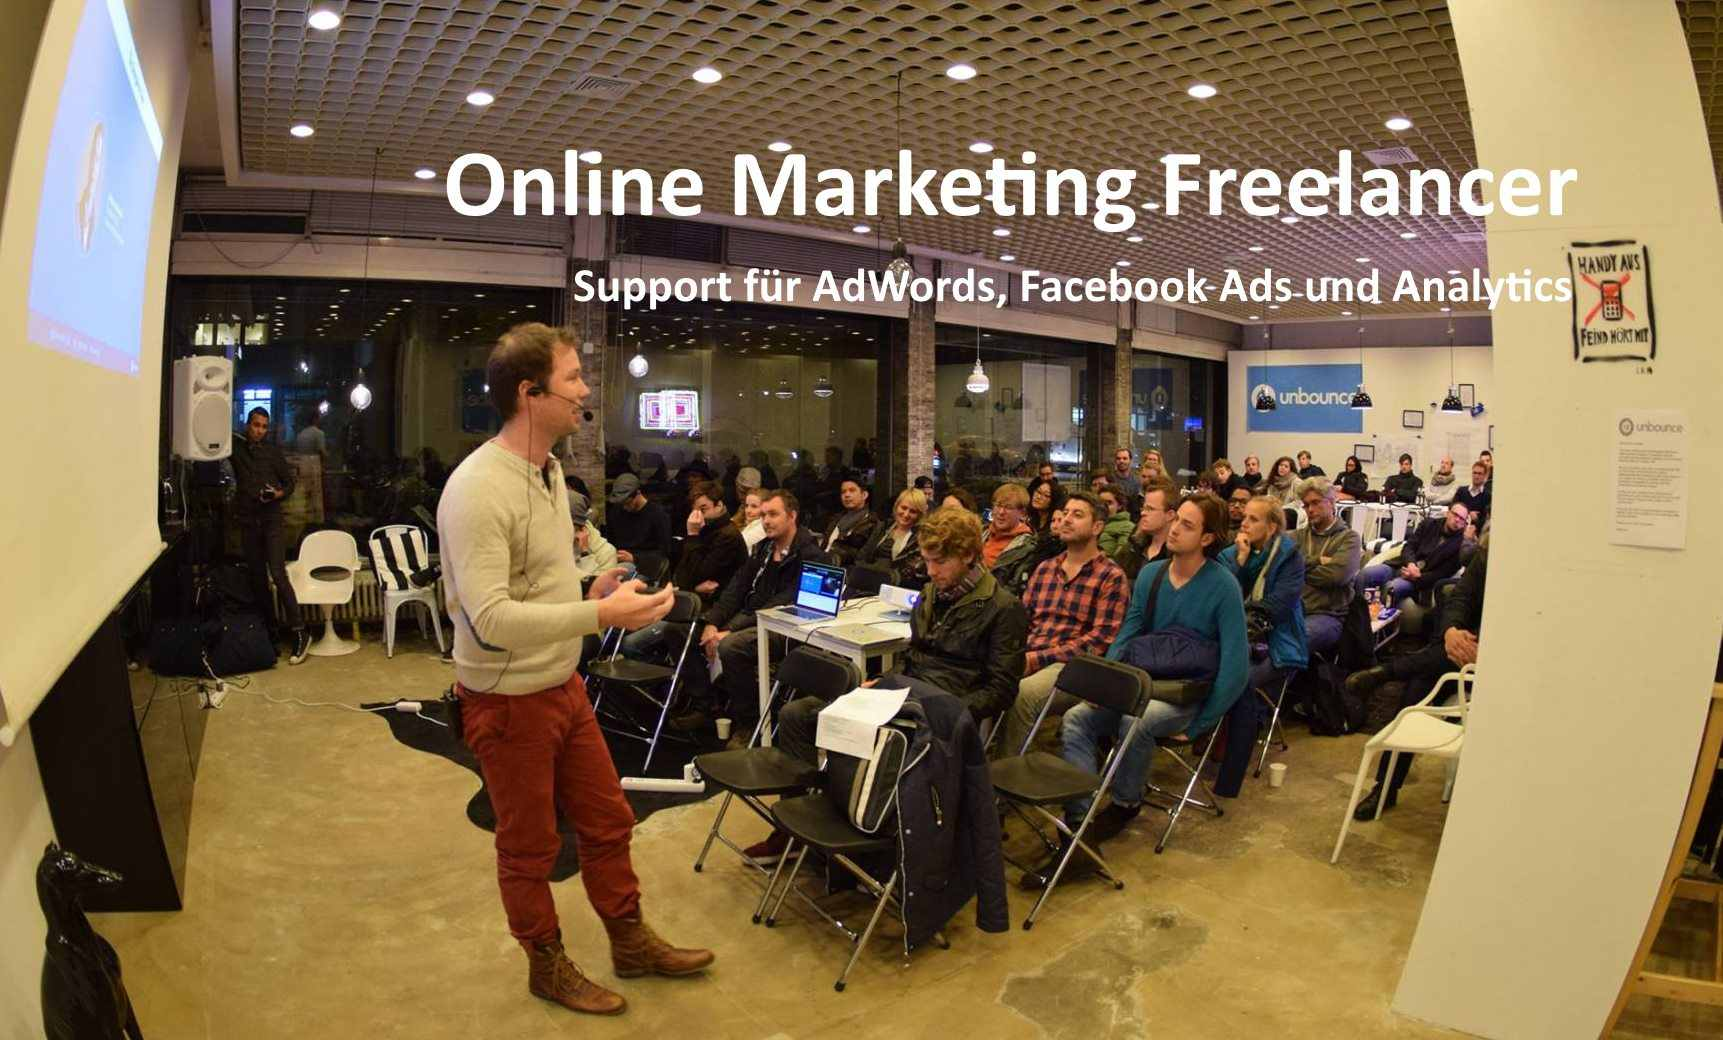 Online Marketing Freelancer